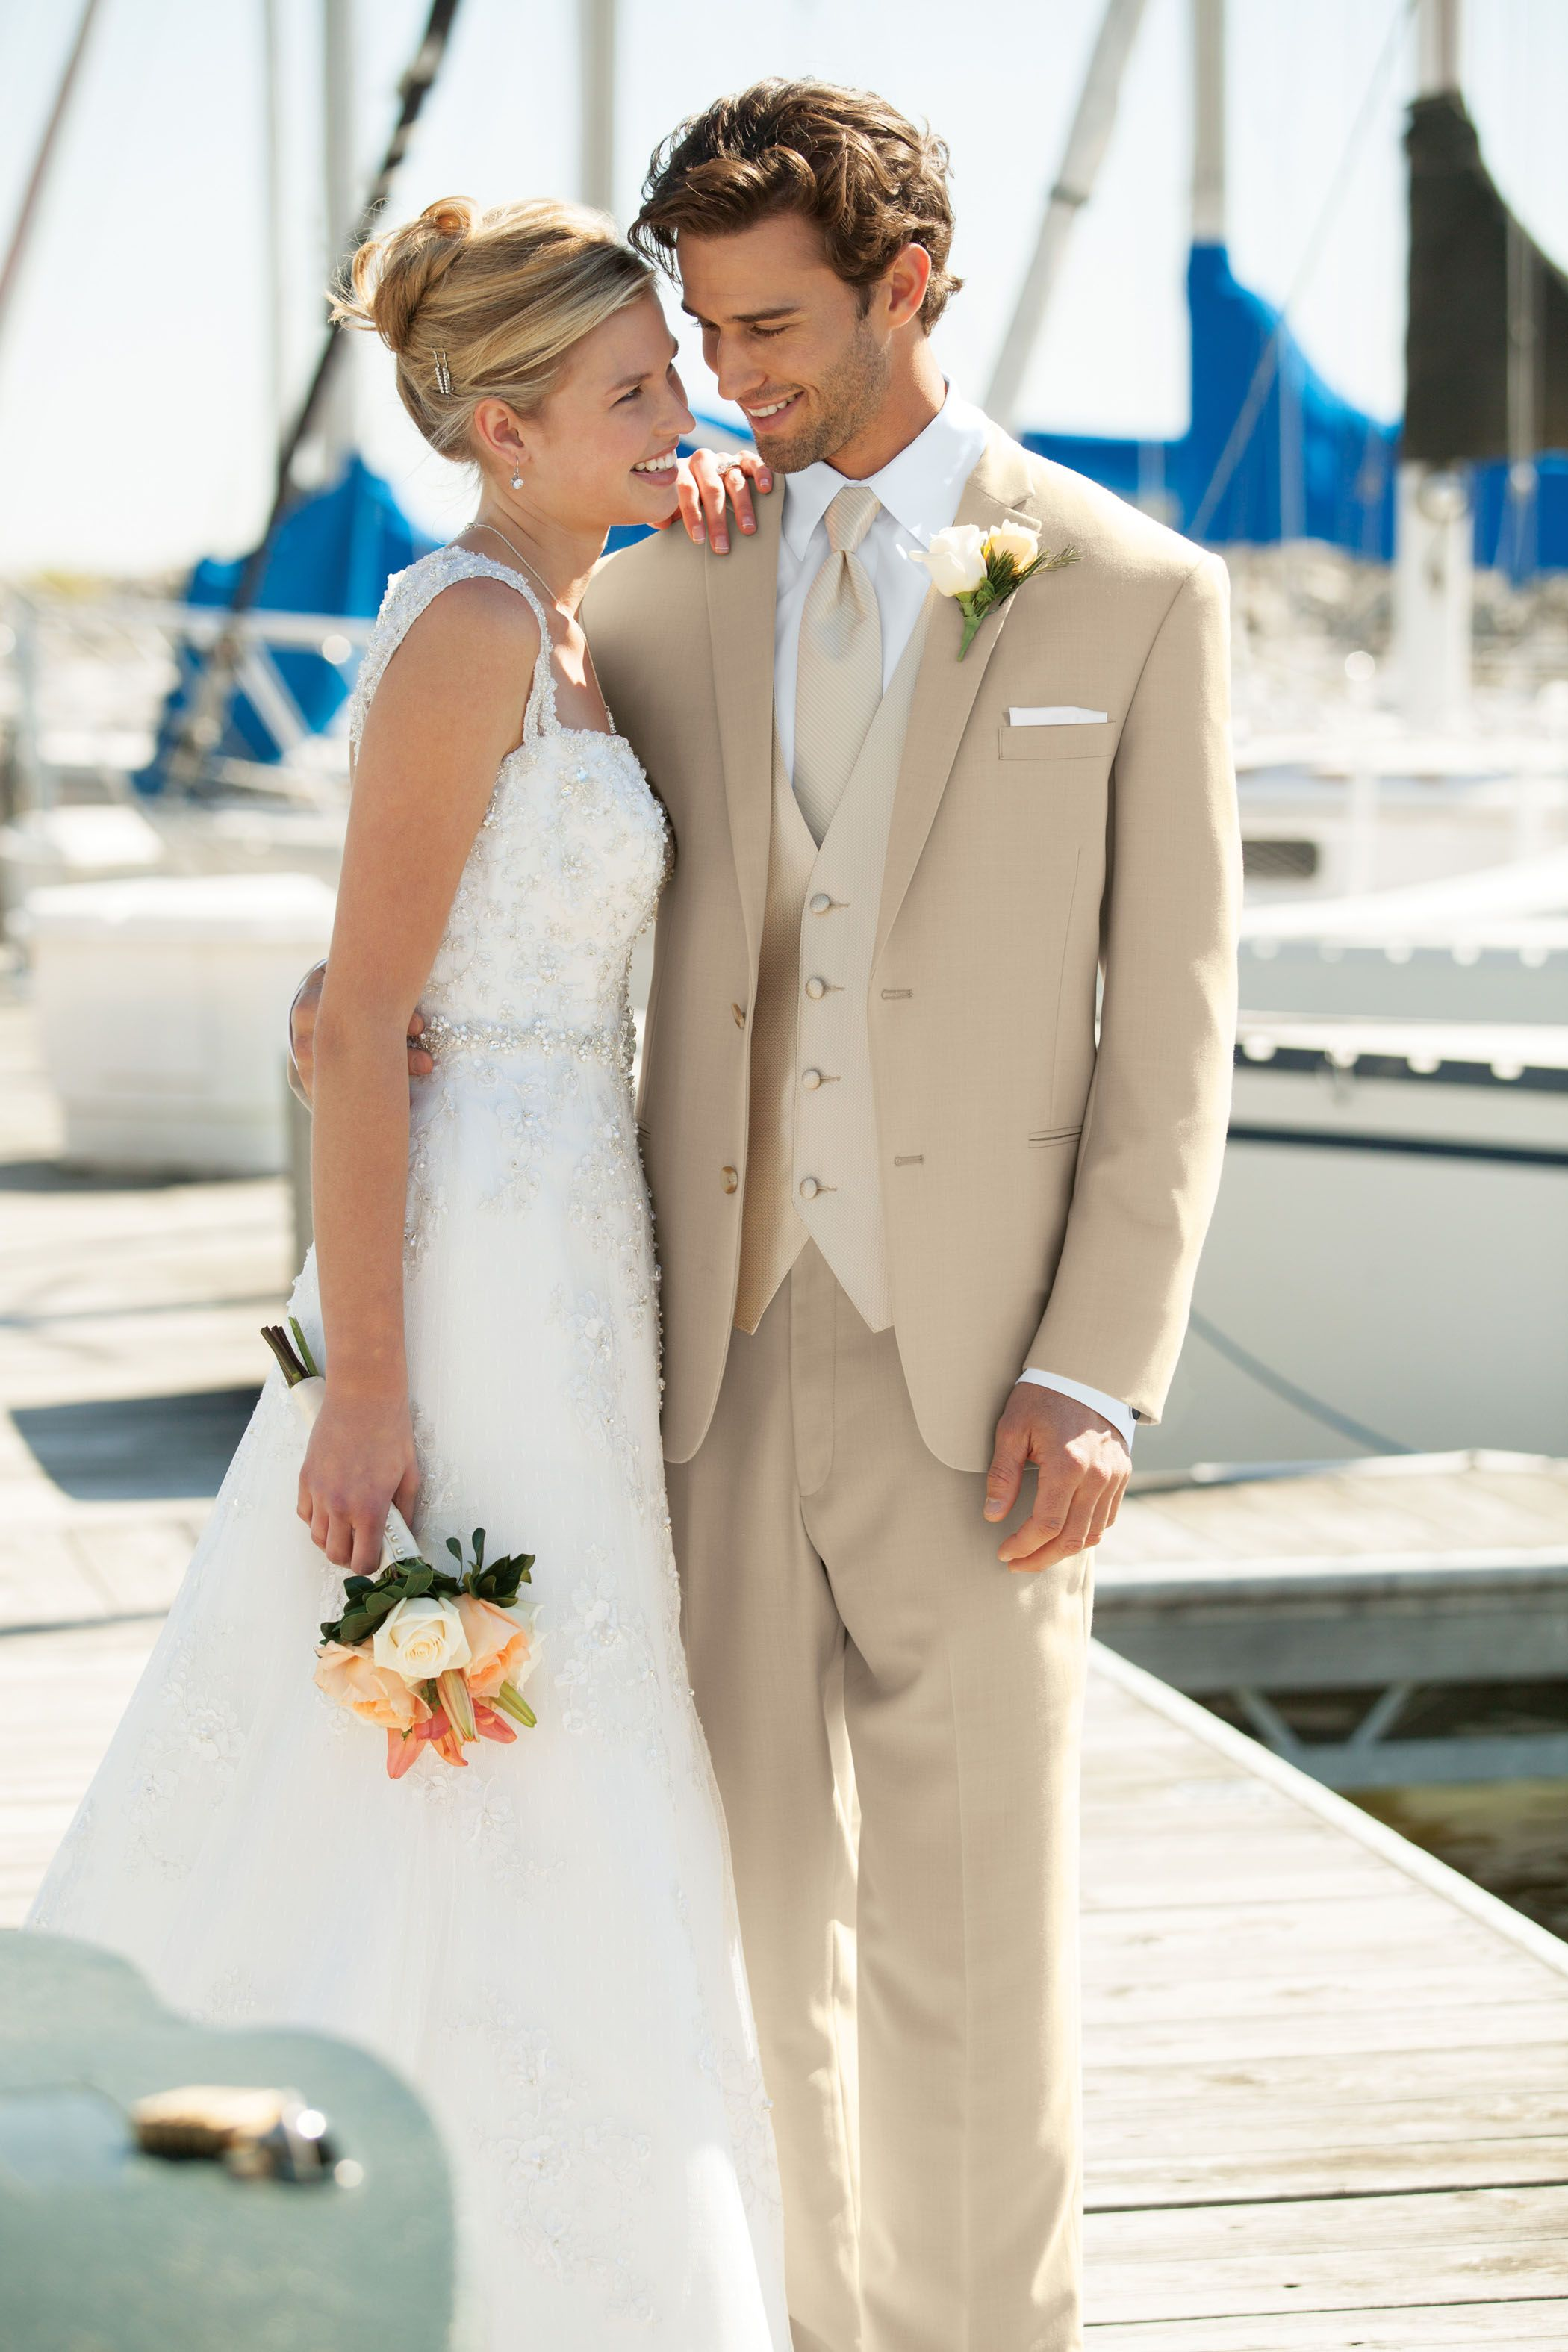 Destination Tan Tuxedo | Tuxedo Rentals | Pinterest | Tans, Tan ...